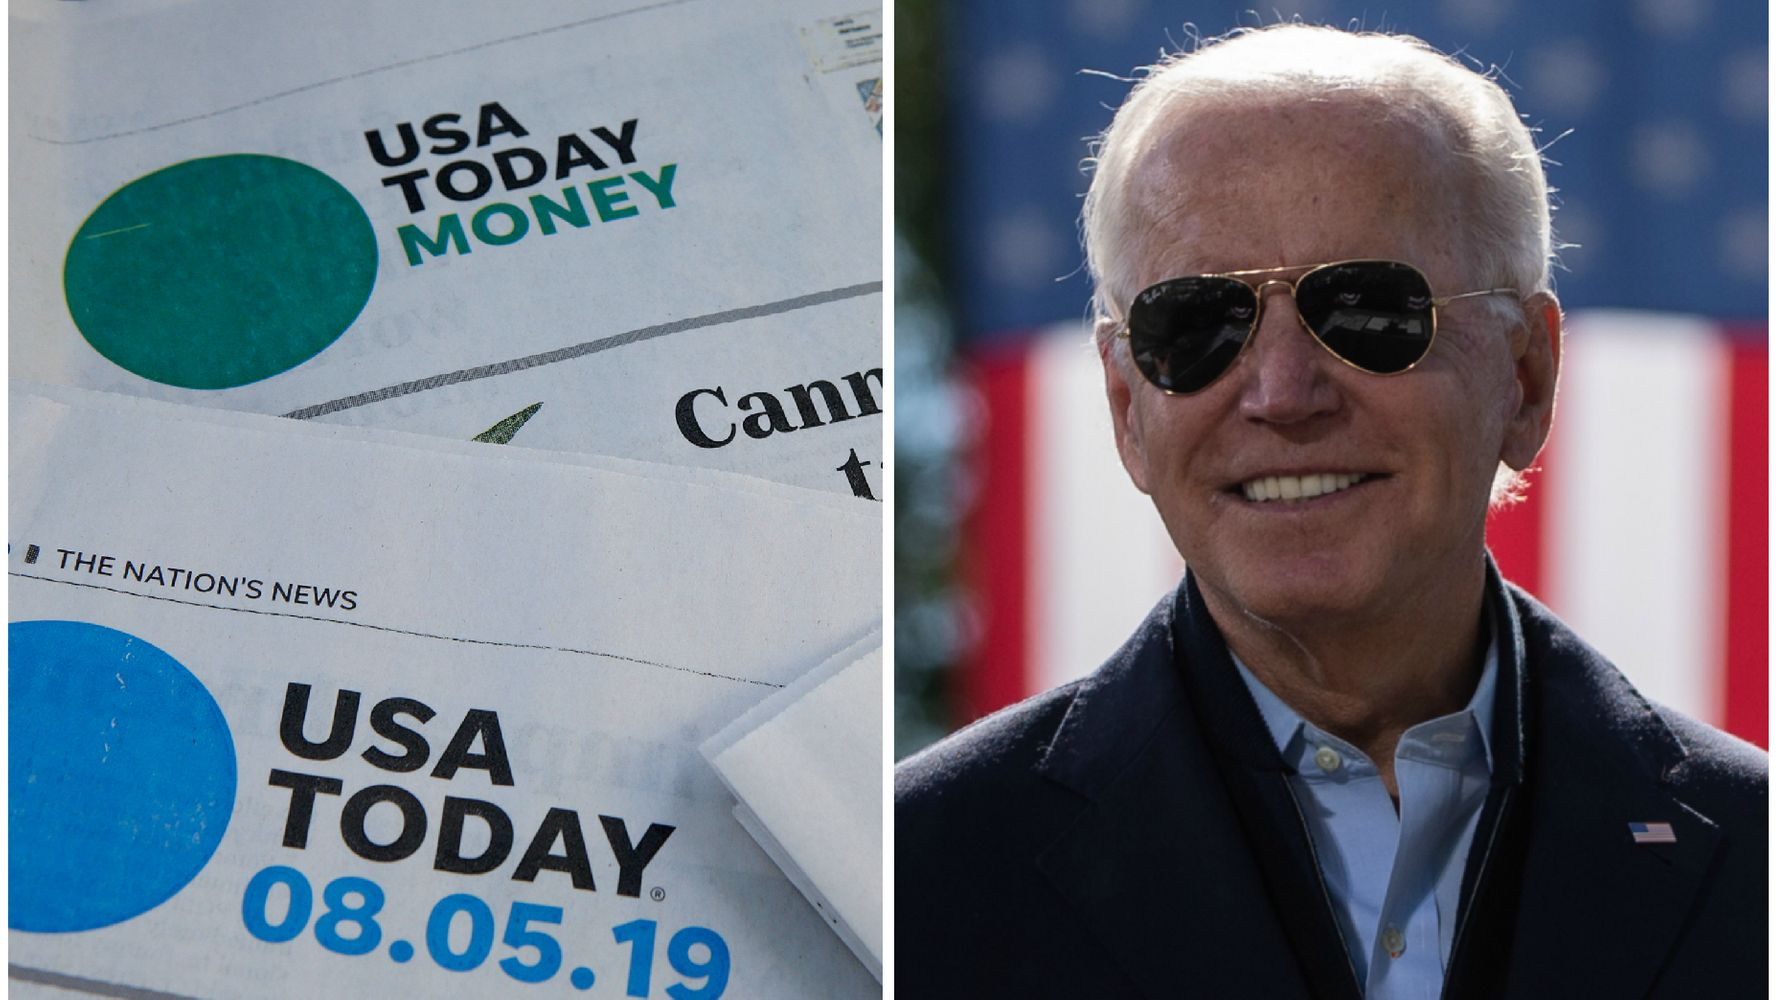 USA Today Says To Elect Joe Biden In First-Ever Presidential Endorsement